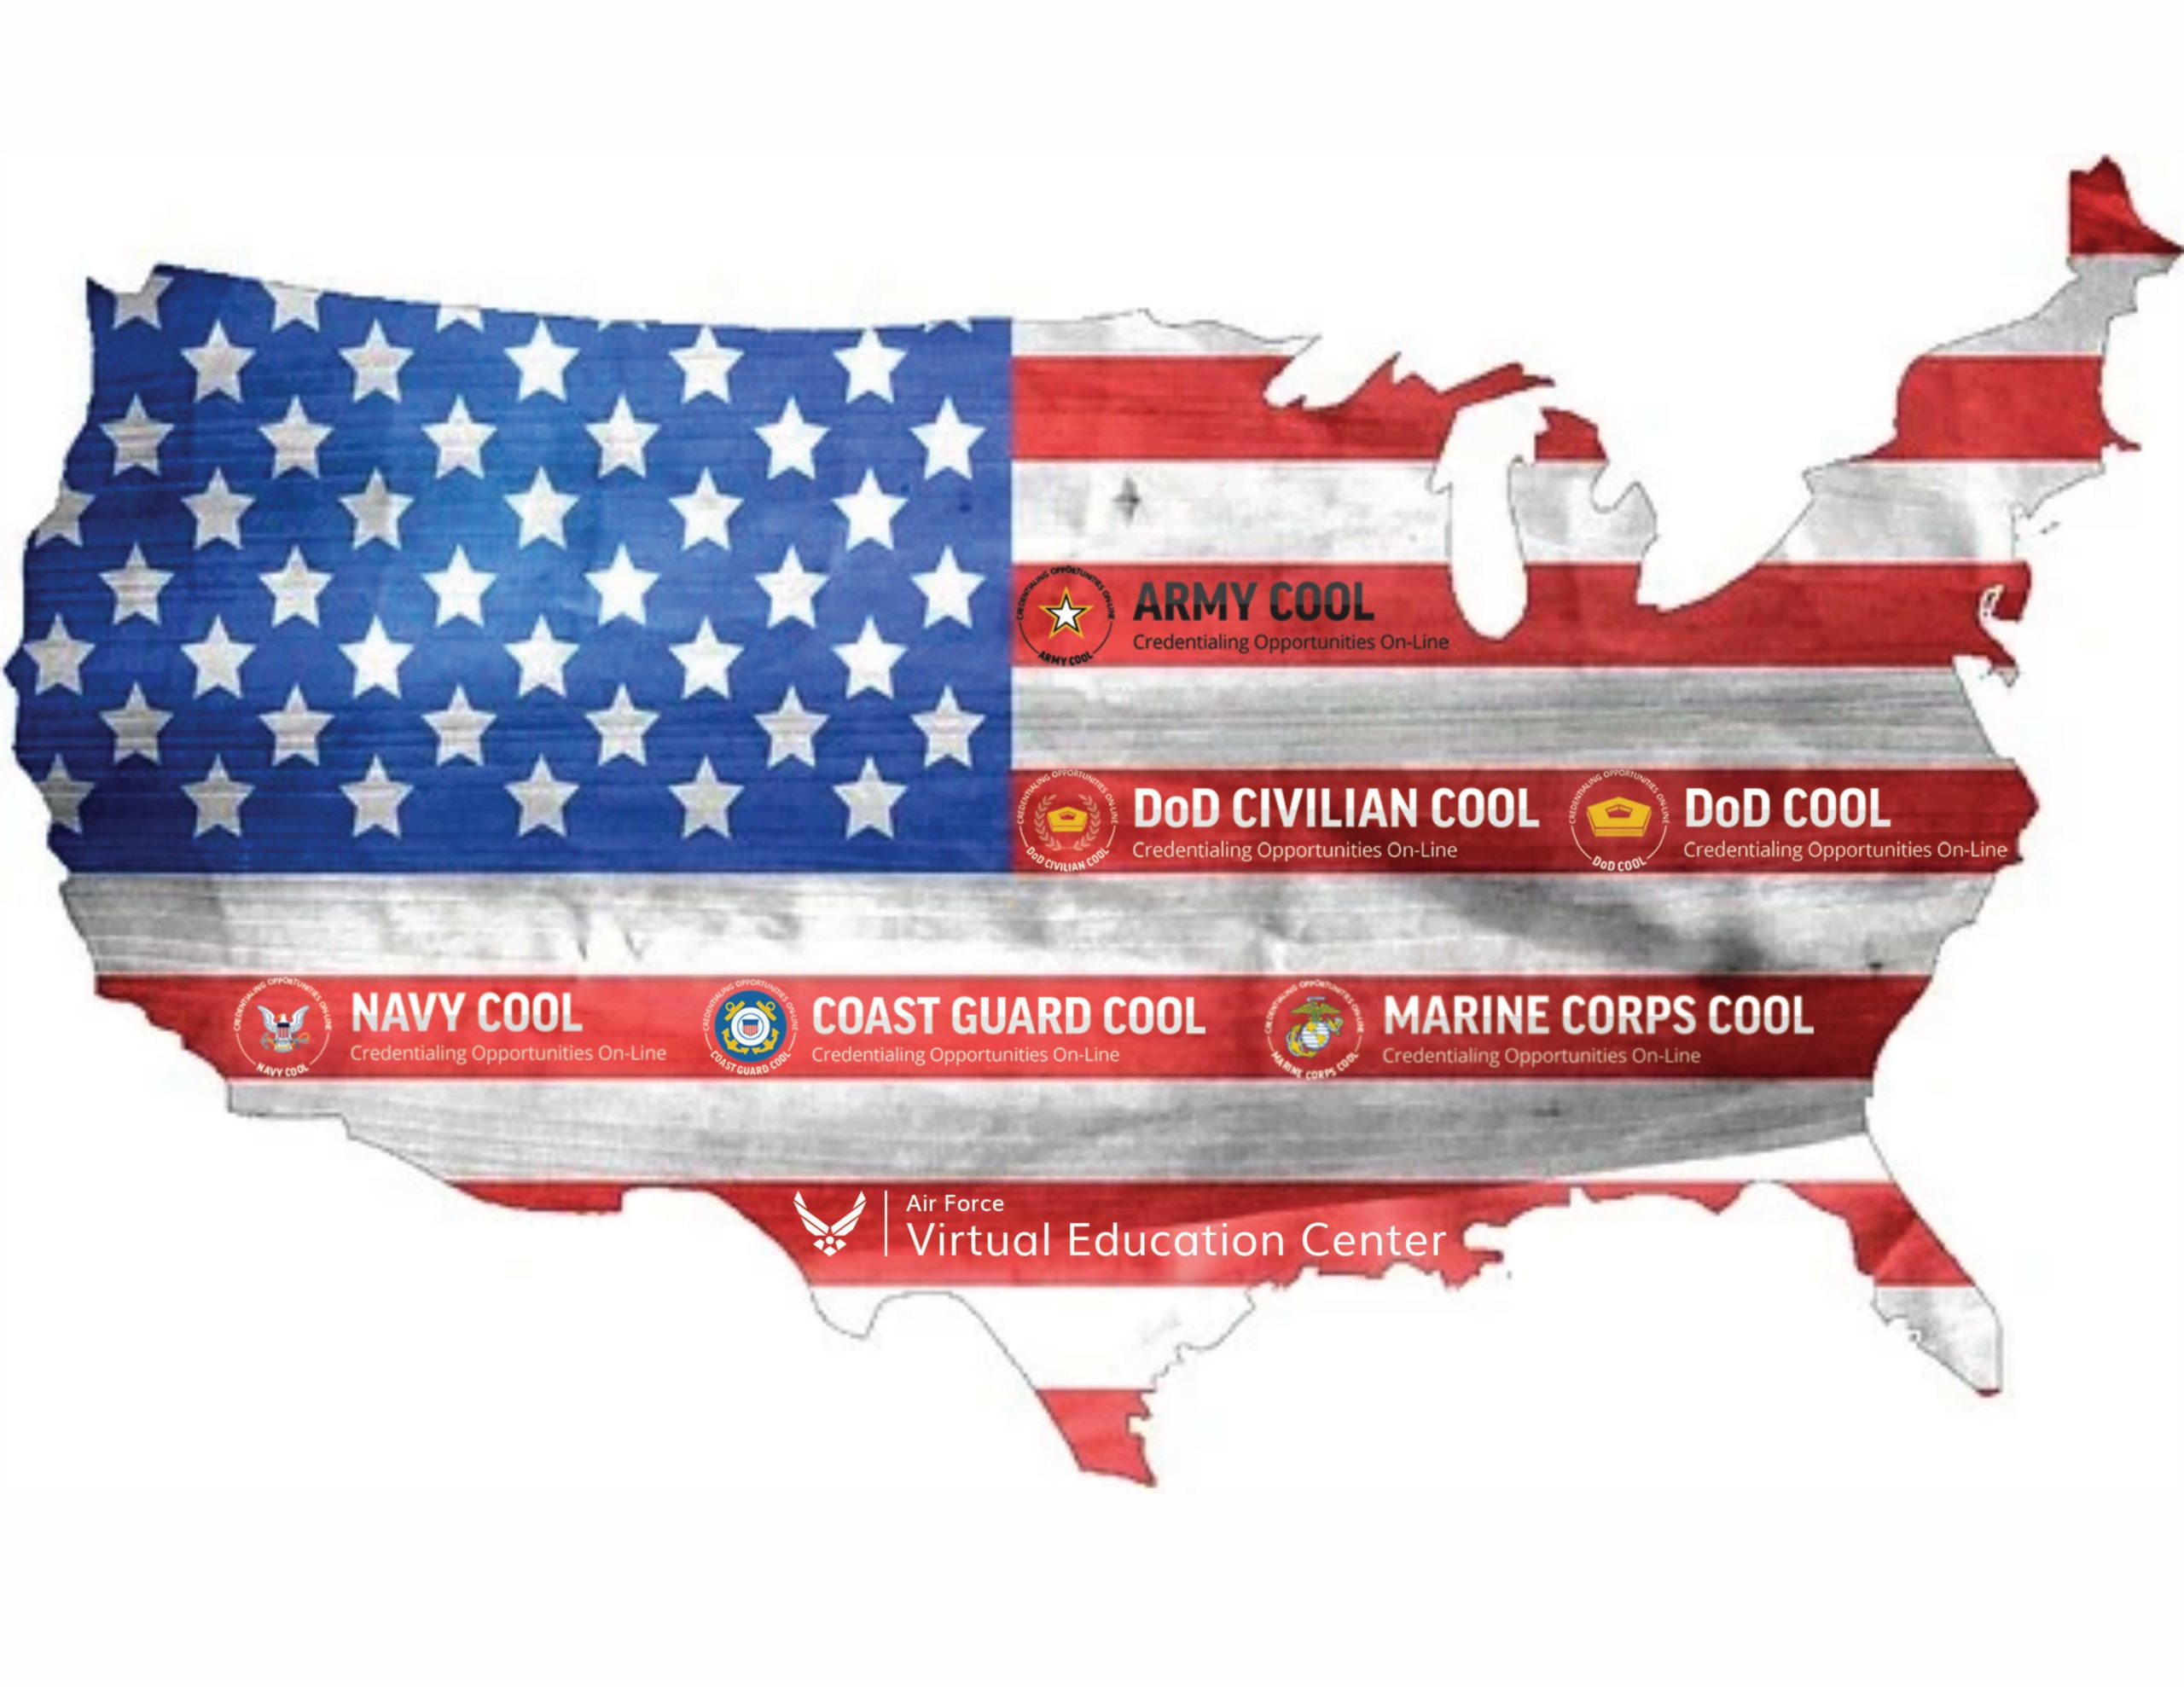 All COOL Logos On US Flag Scaled